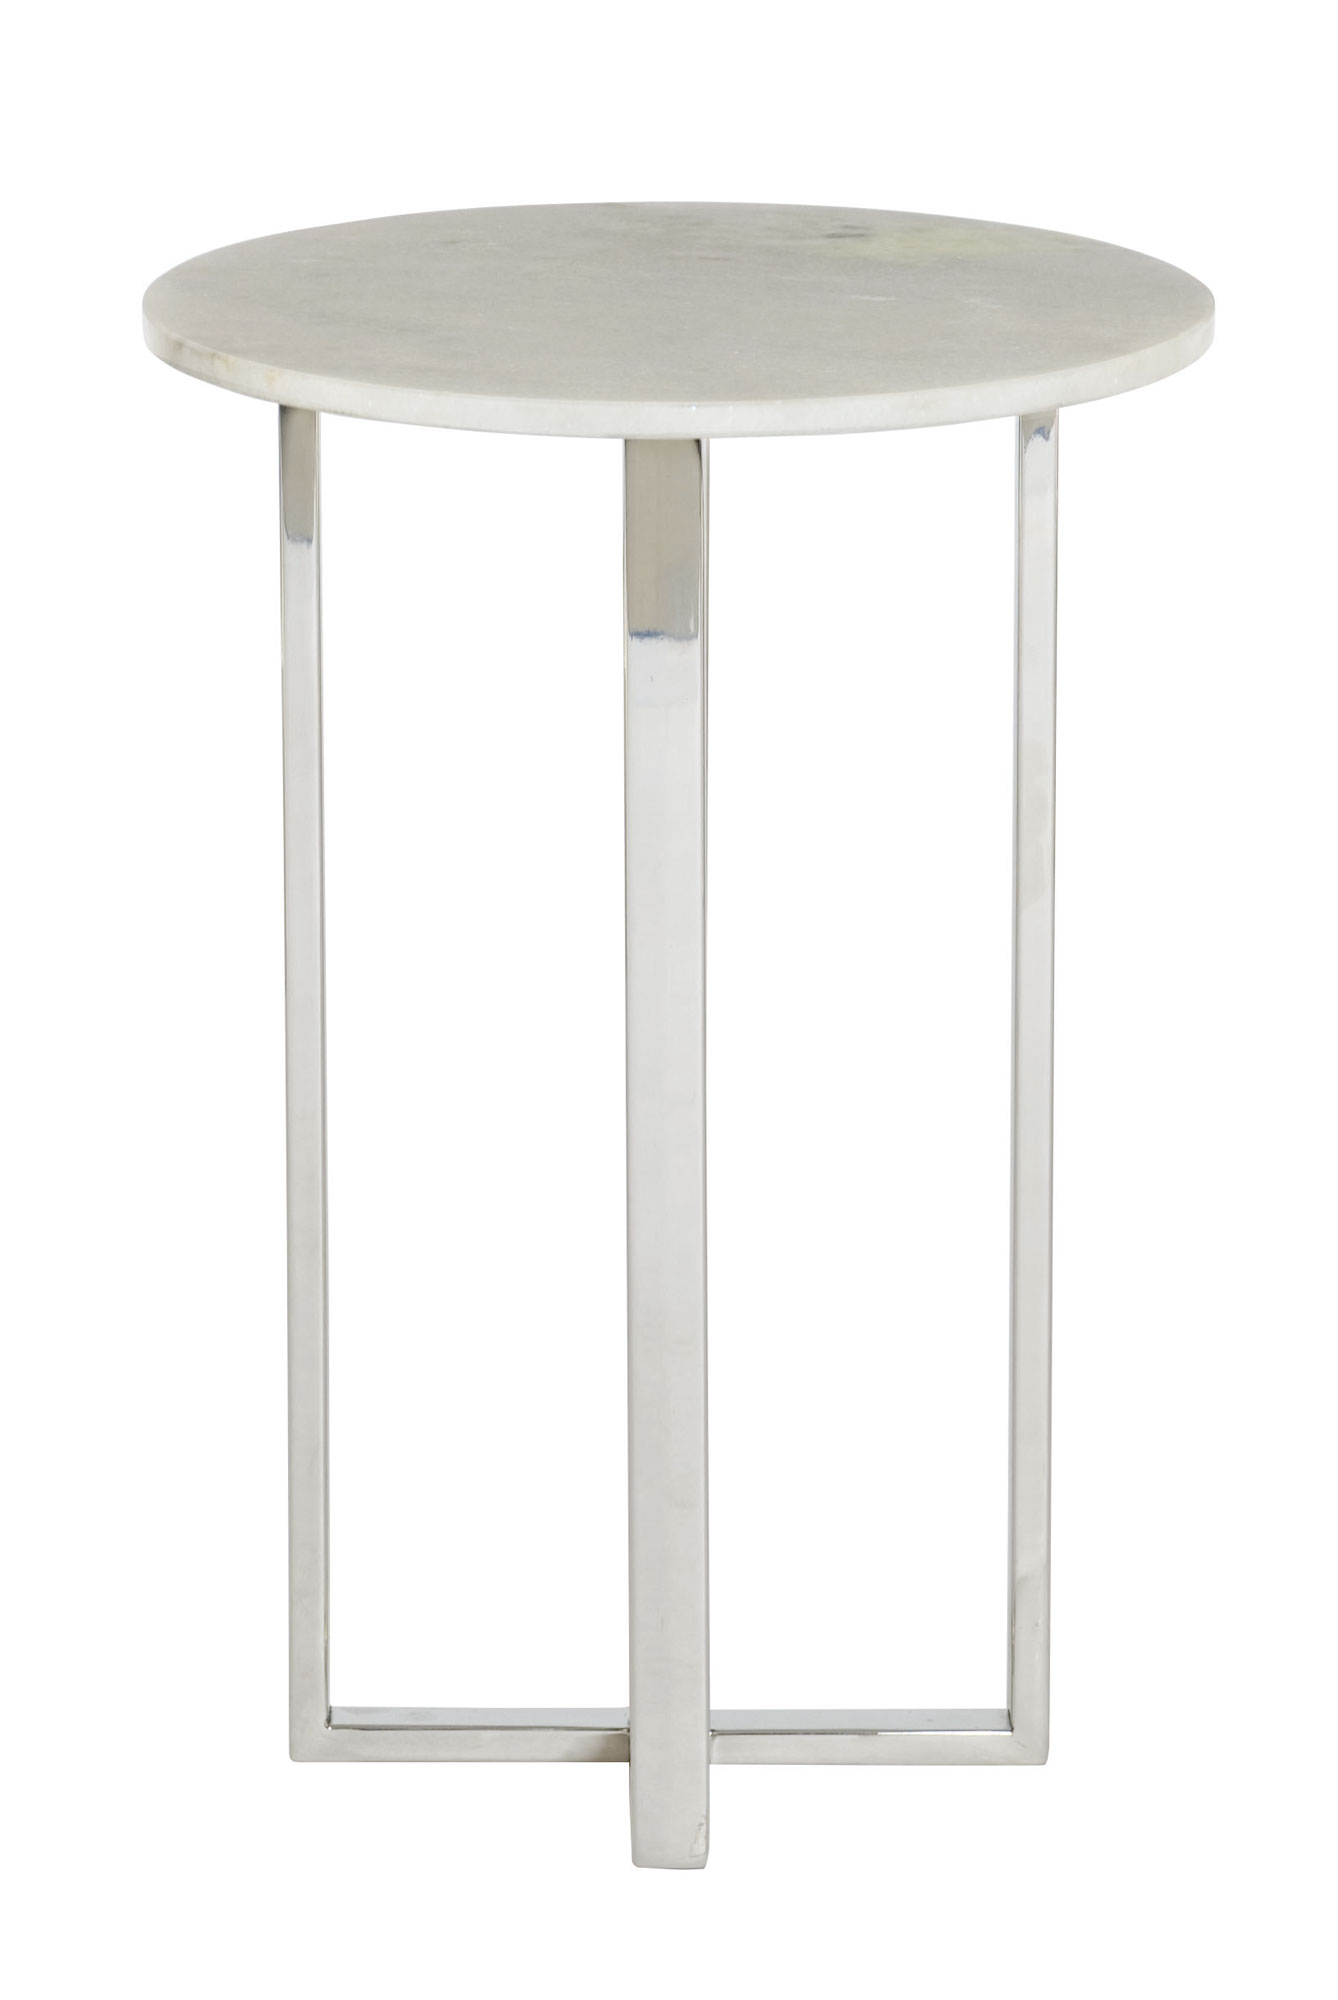 chair side tables canada metal folding covers for sale chairside table bernhardt